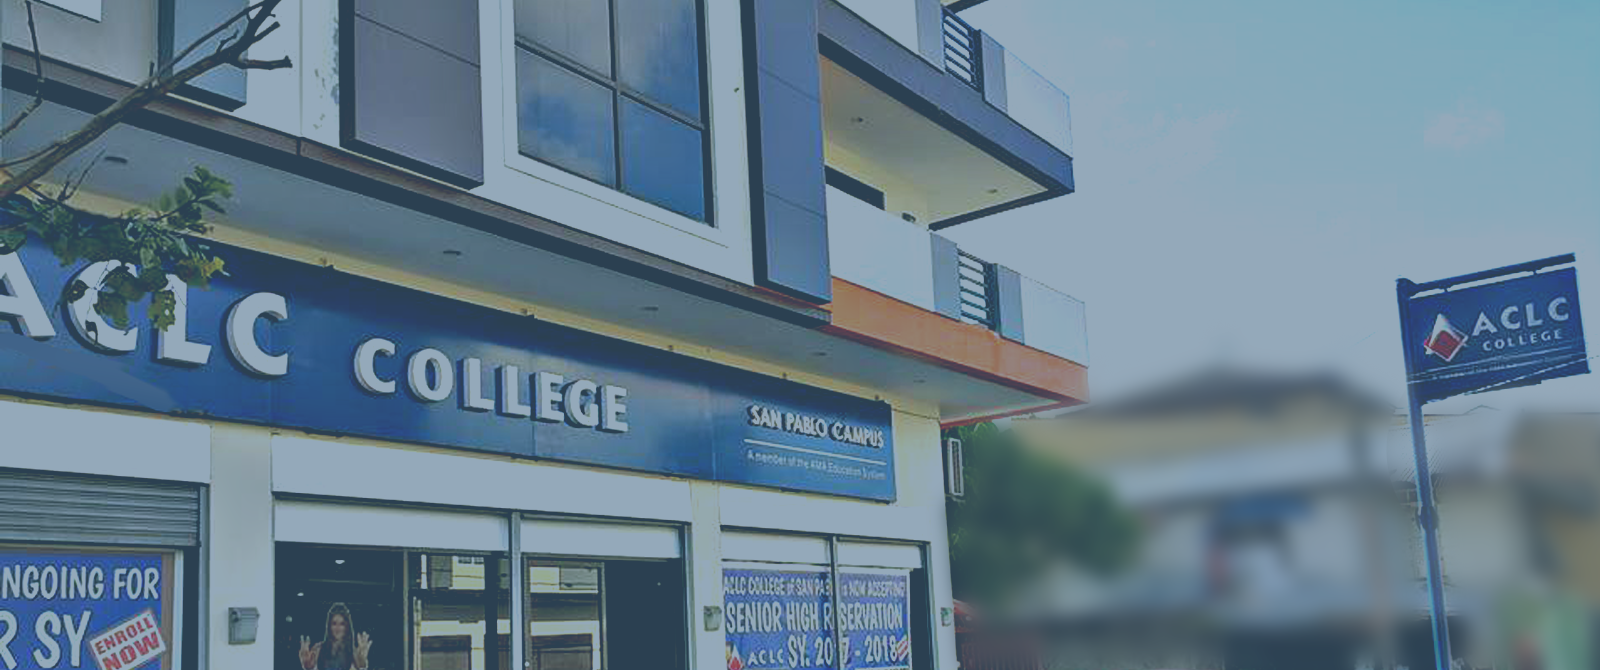 Welcome to ACLC College Official Website!